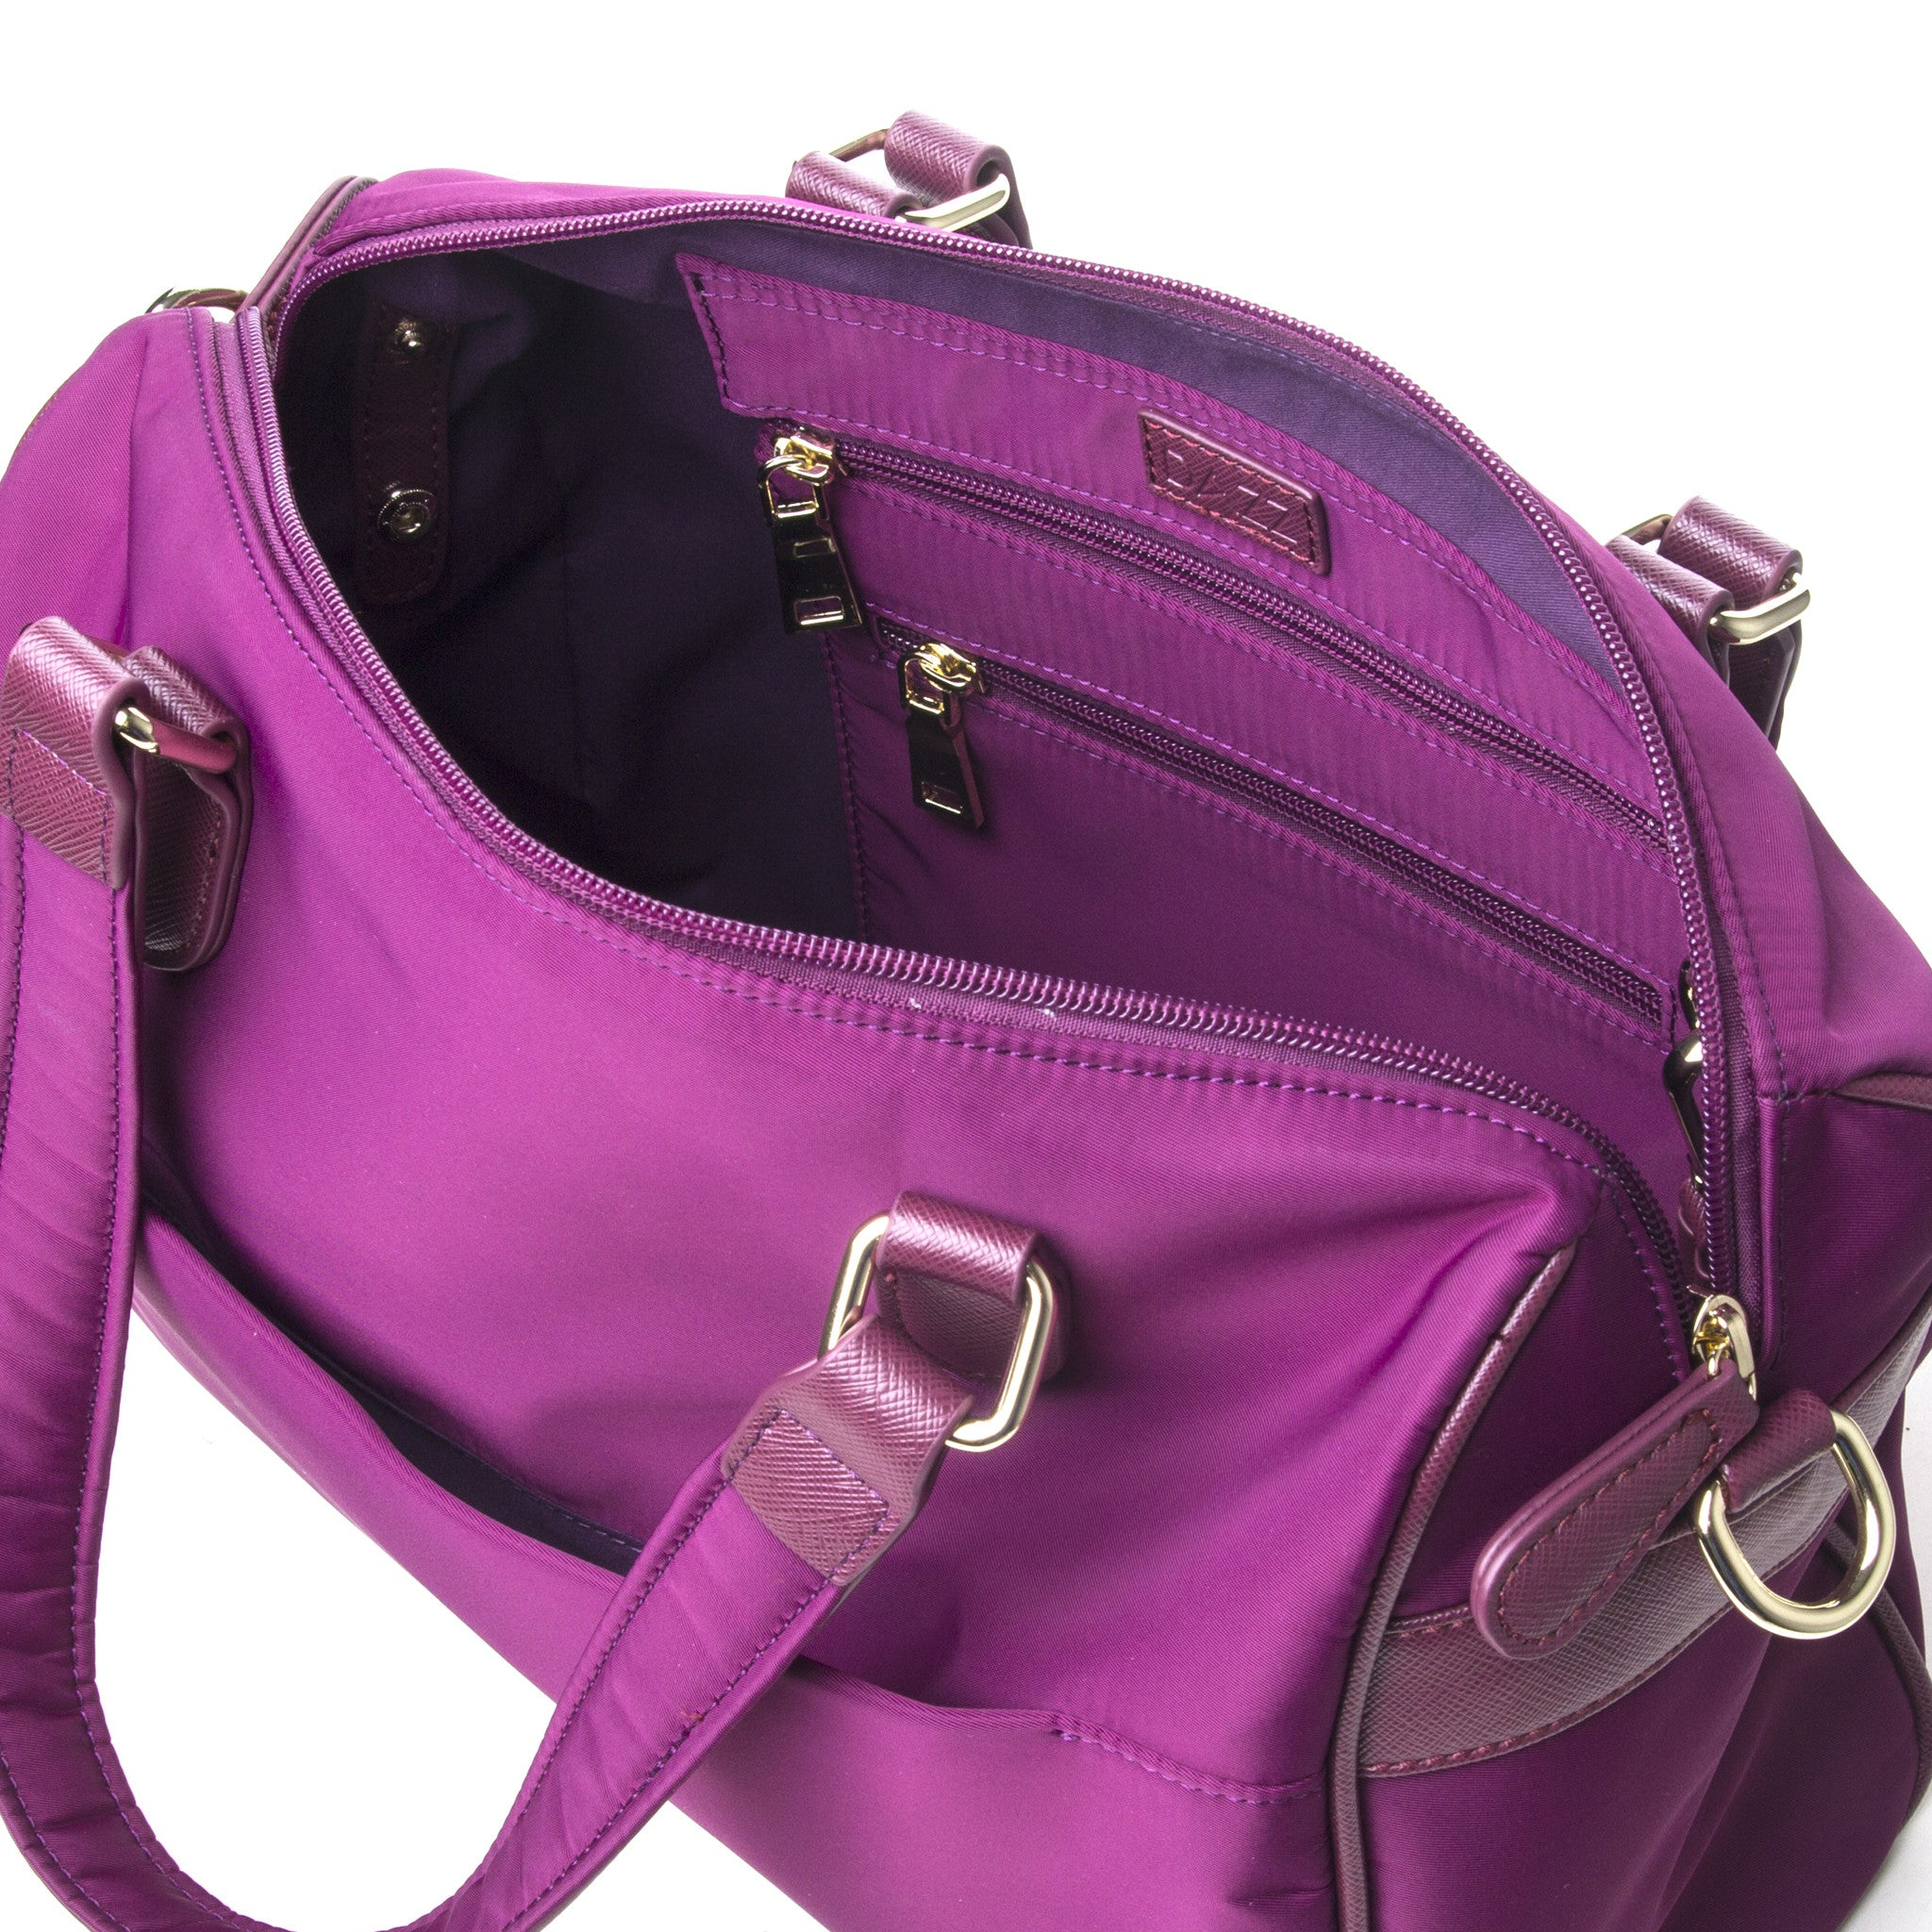 On the Go 4-in-1 Bag by DAZZ - Majestic Magenta/Electric Teal/Titanium Grey